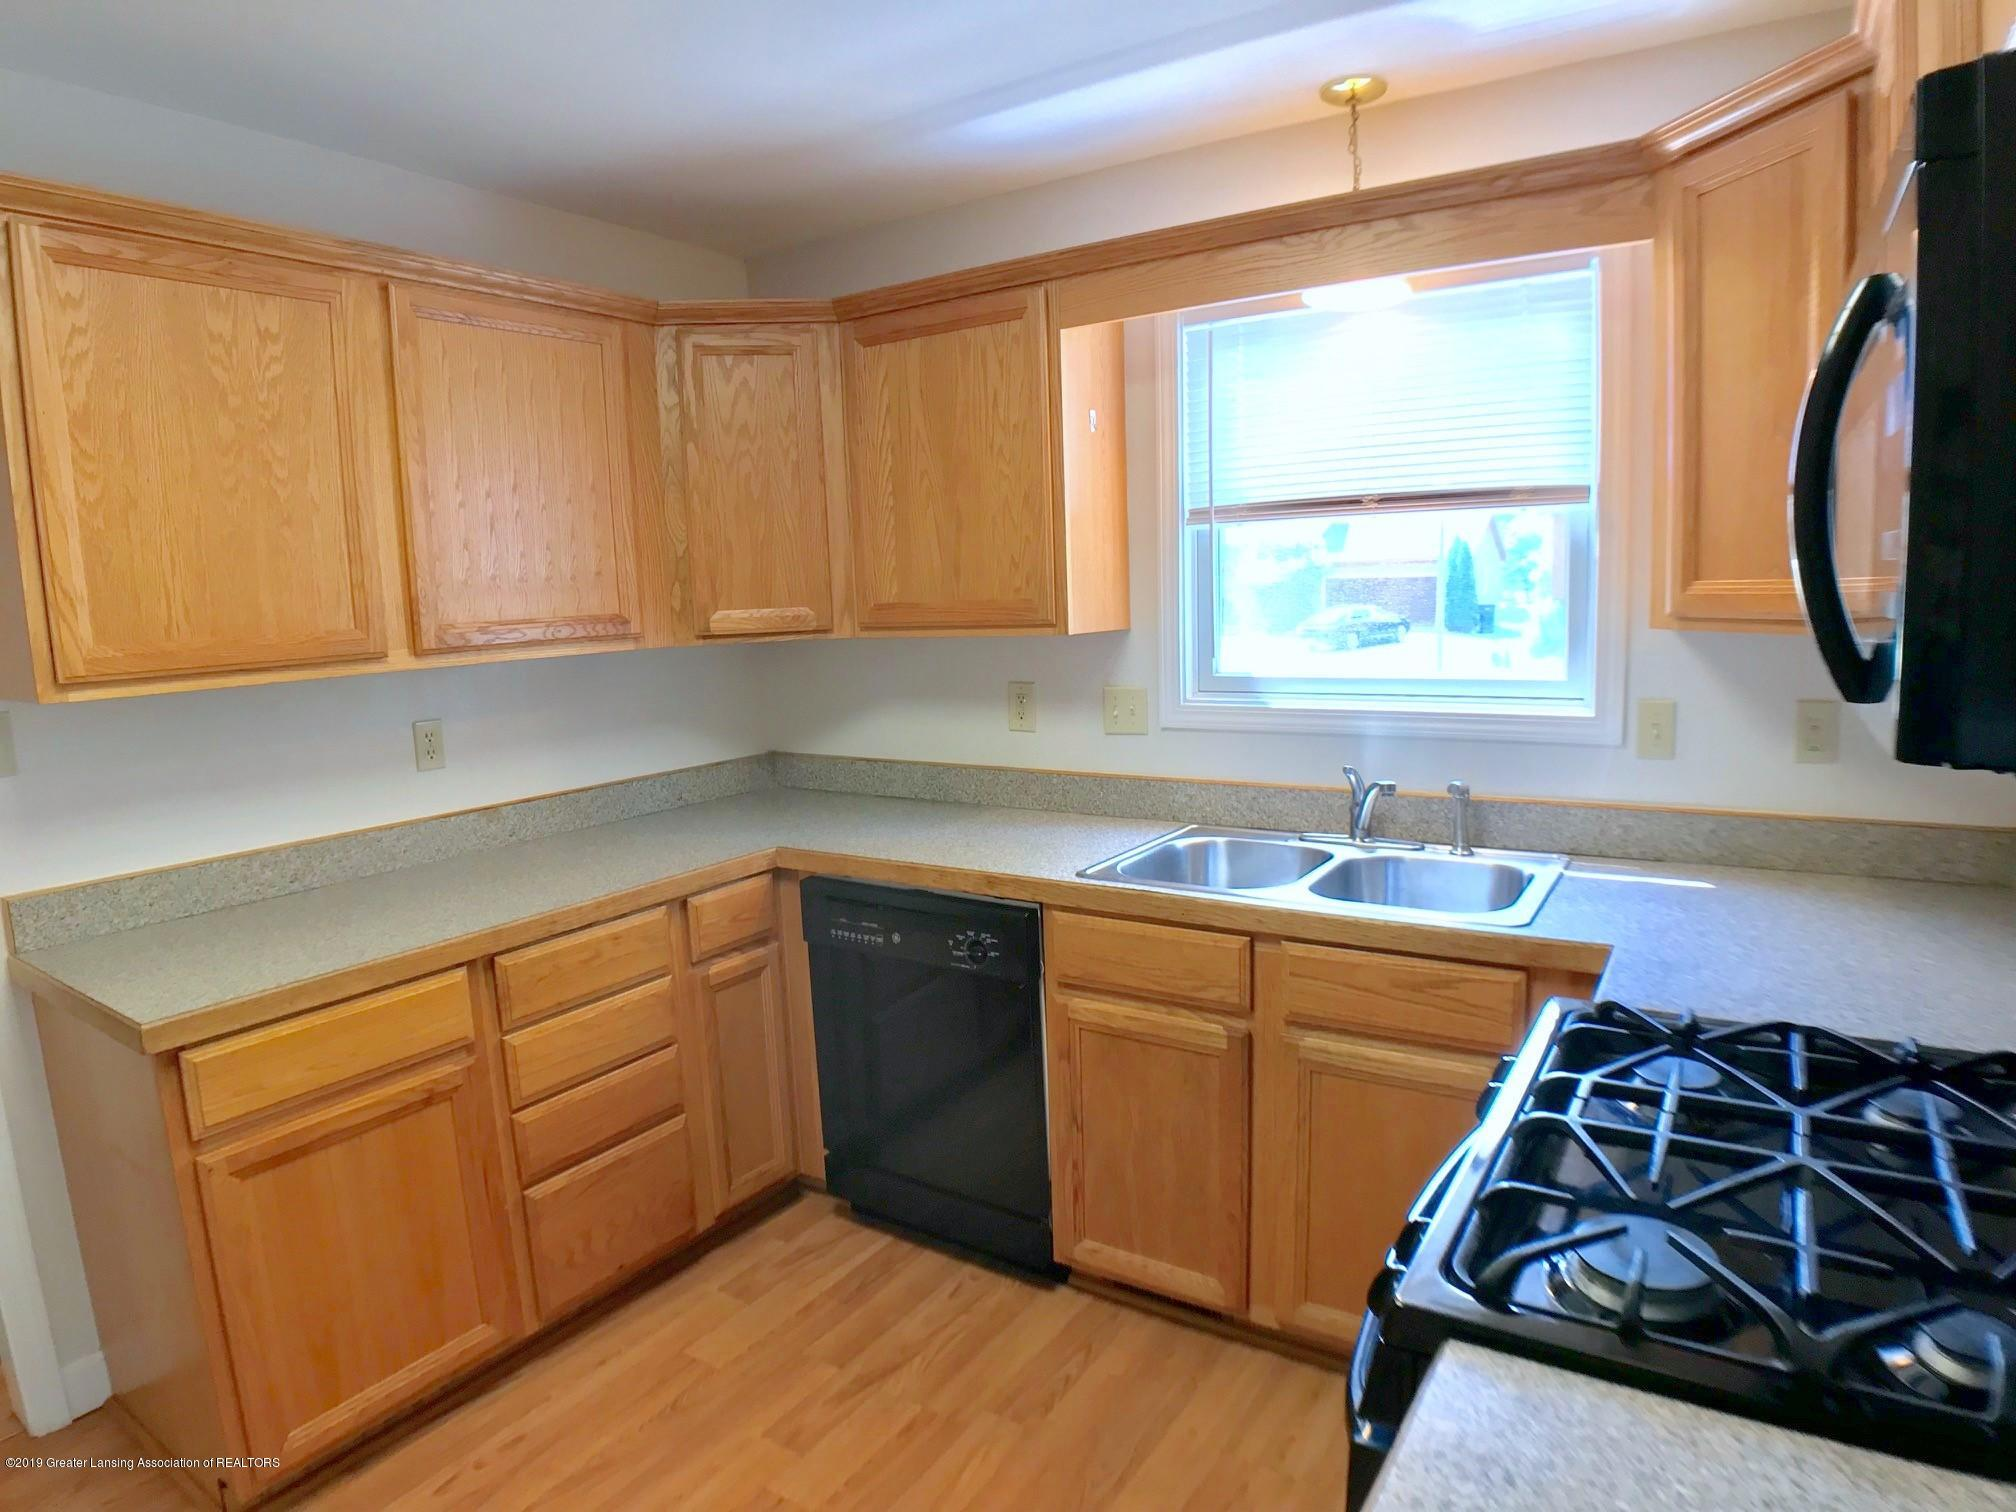 5703 Piper Ave - Kitchen - 12